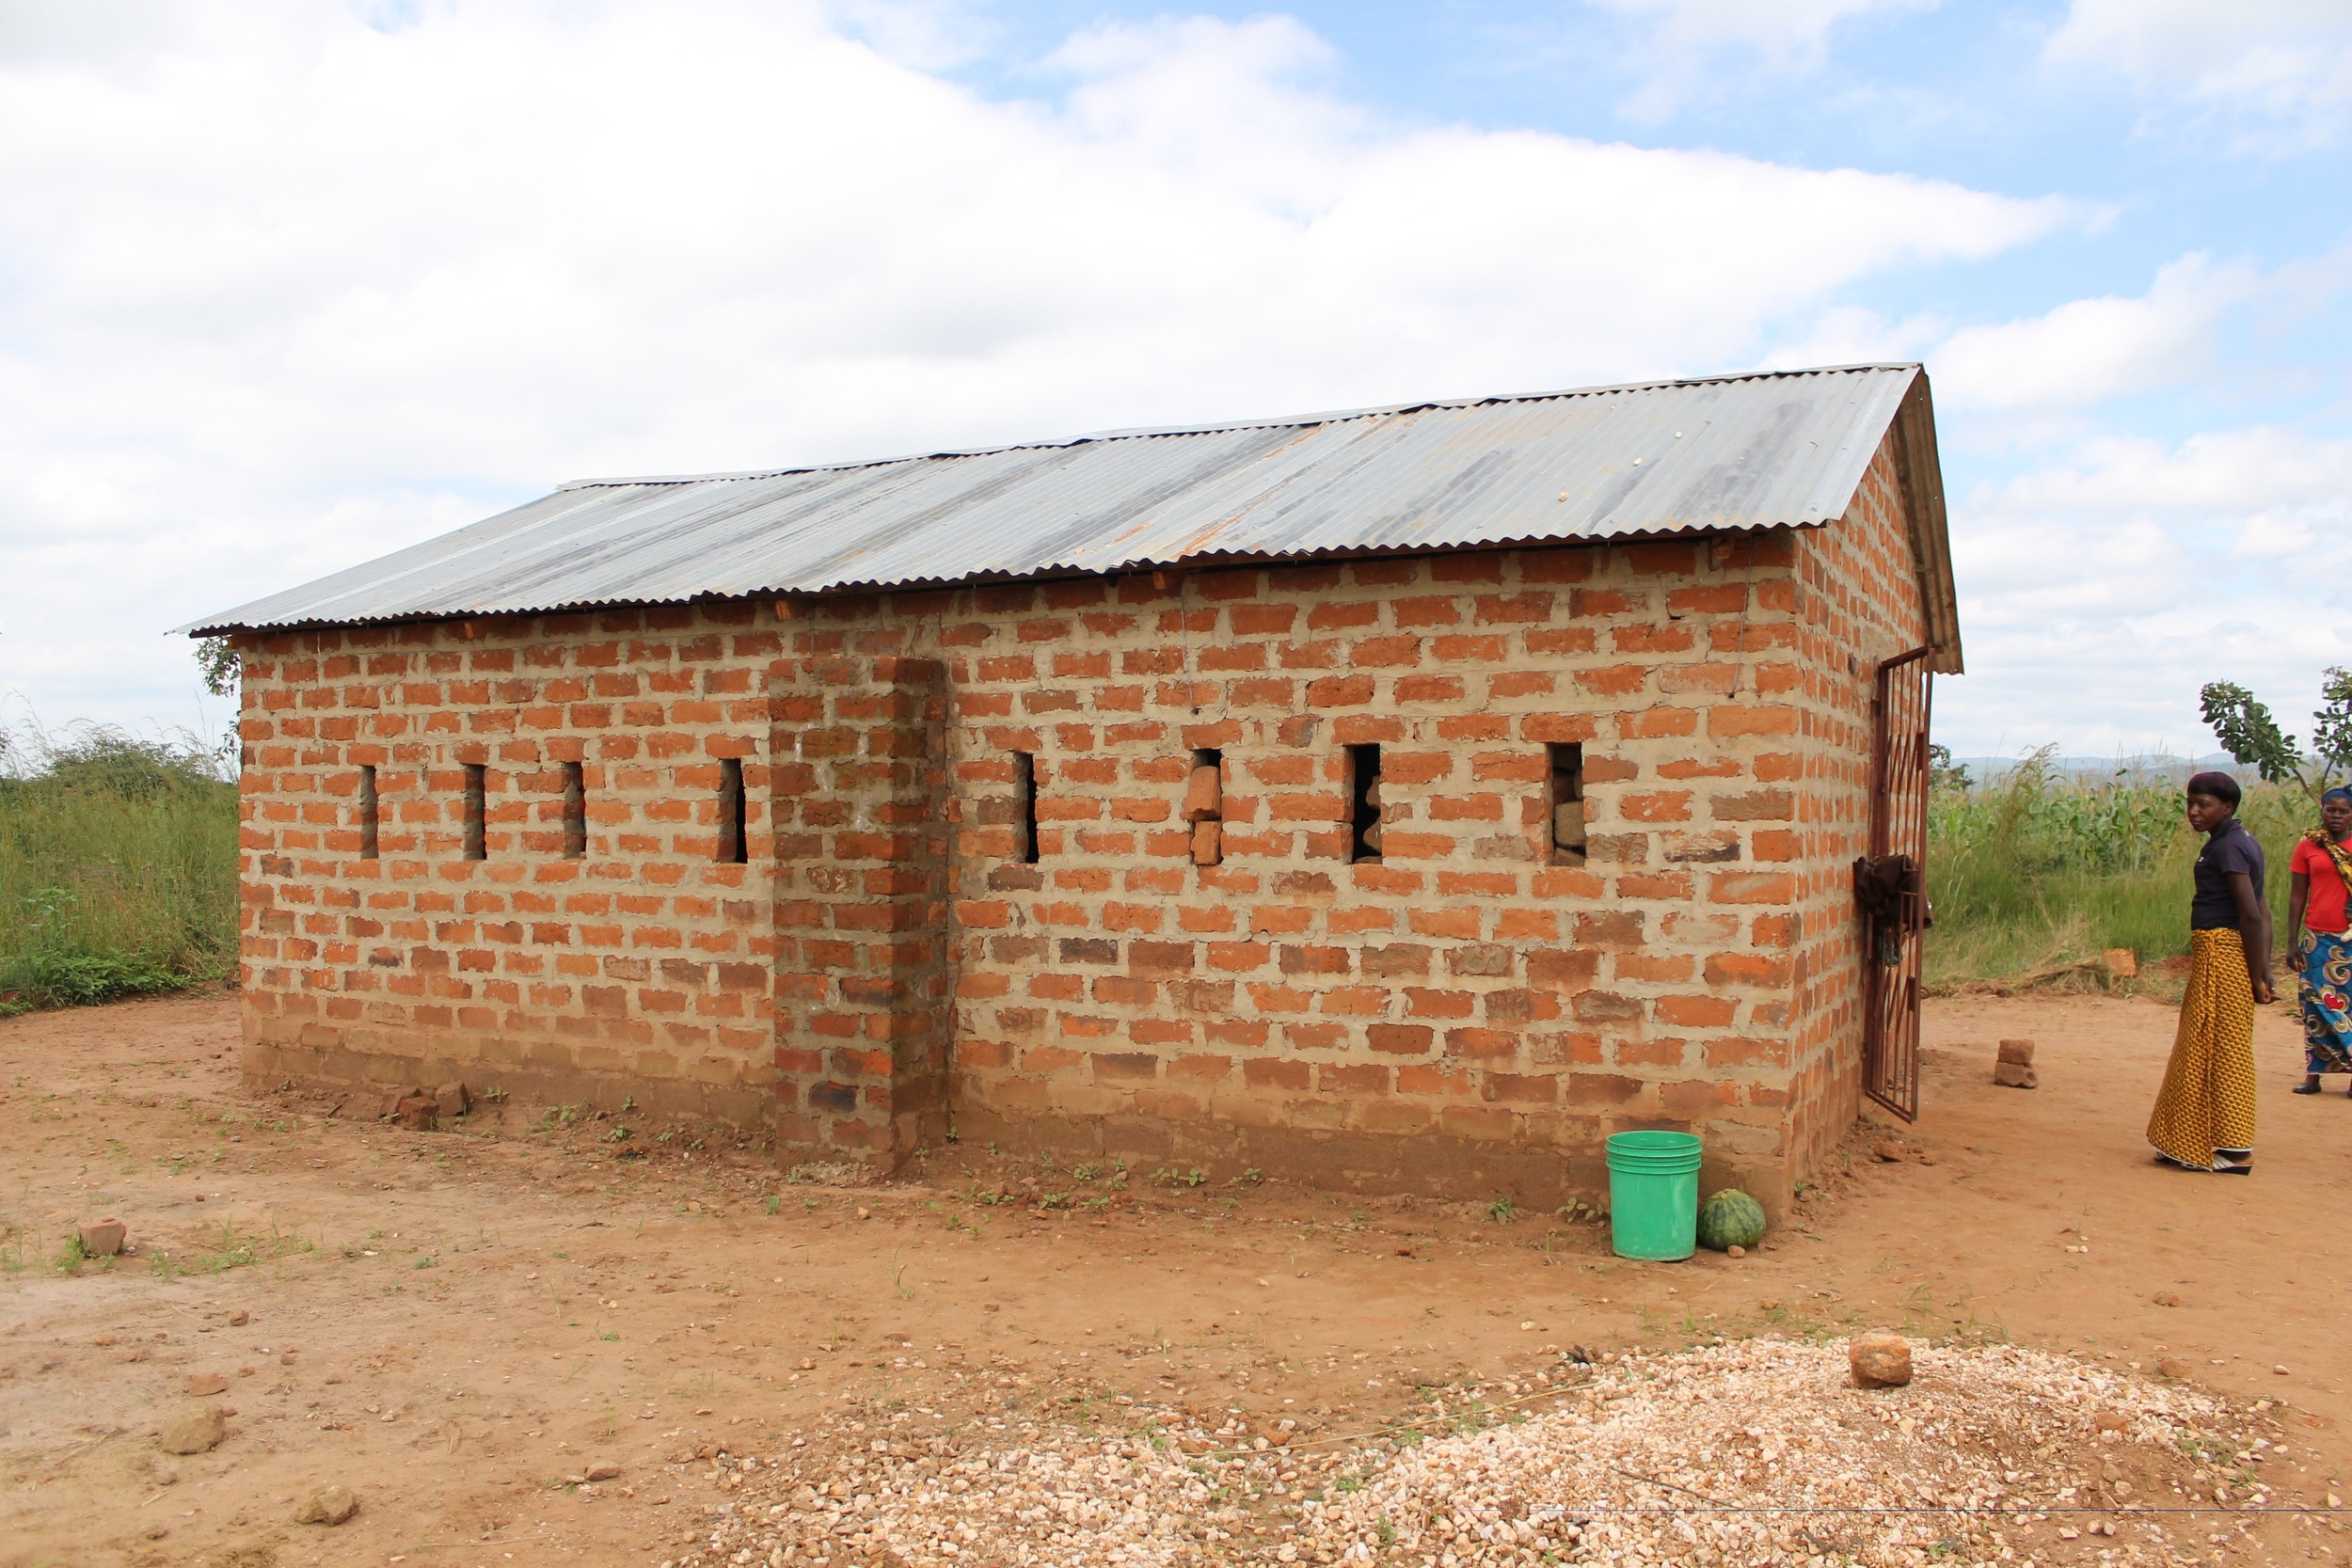 Three hours later, we pulled up to this BEAUTIFUL new Chikondi Community Center in Muchochoma Village, made possible by our amazing supporters/donors.